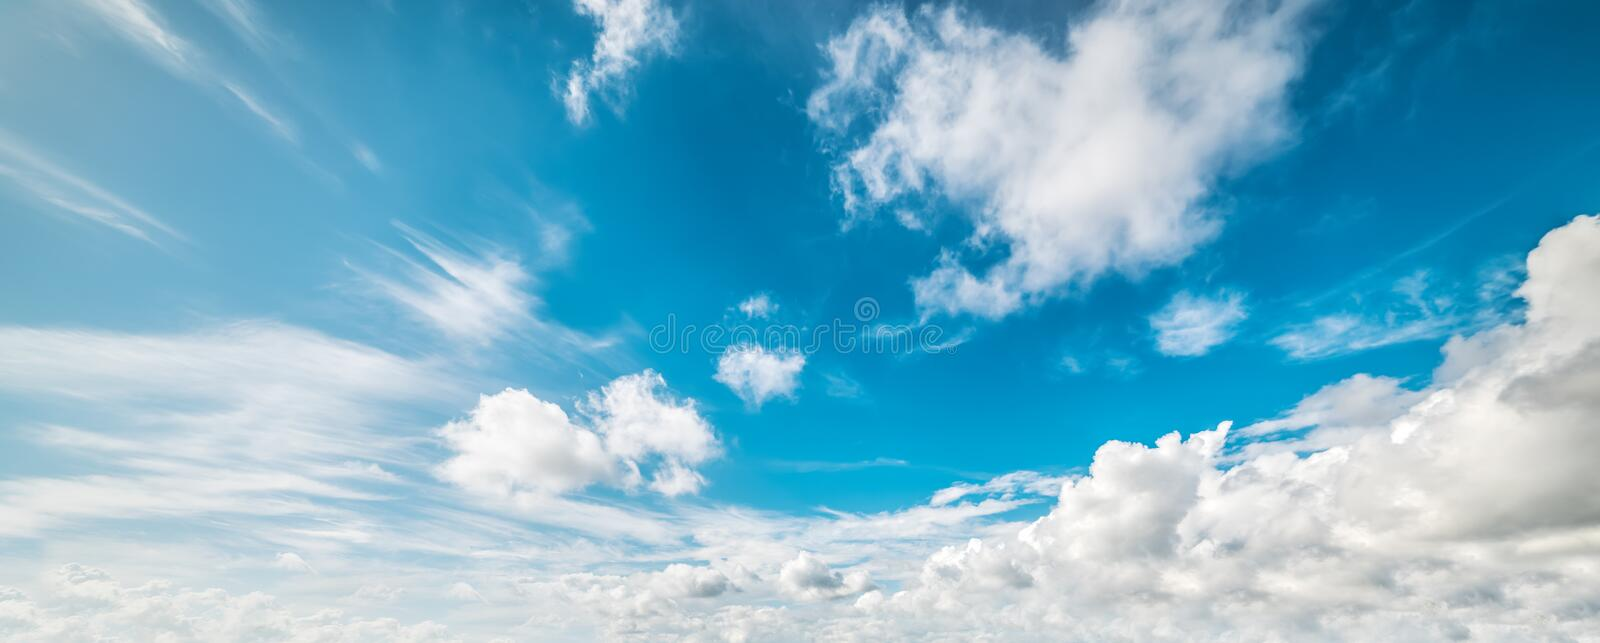 Cumulus clouds in Italy. Blue sky with white, soft clouds stock images